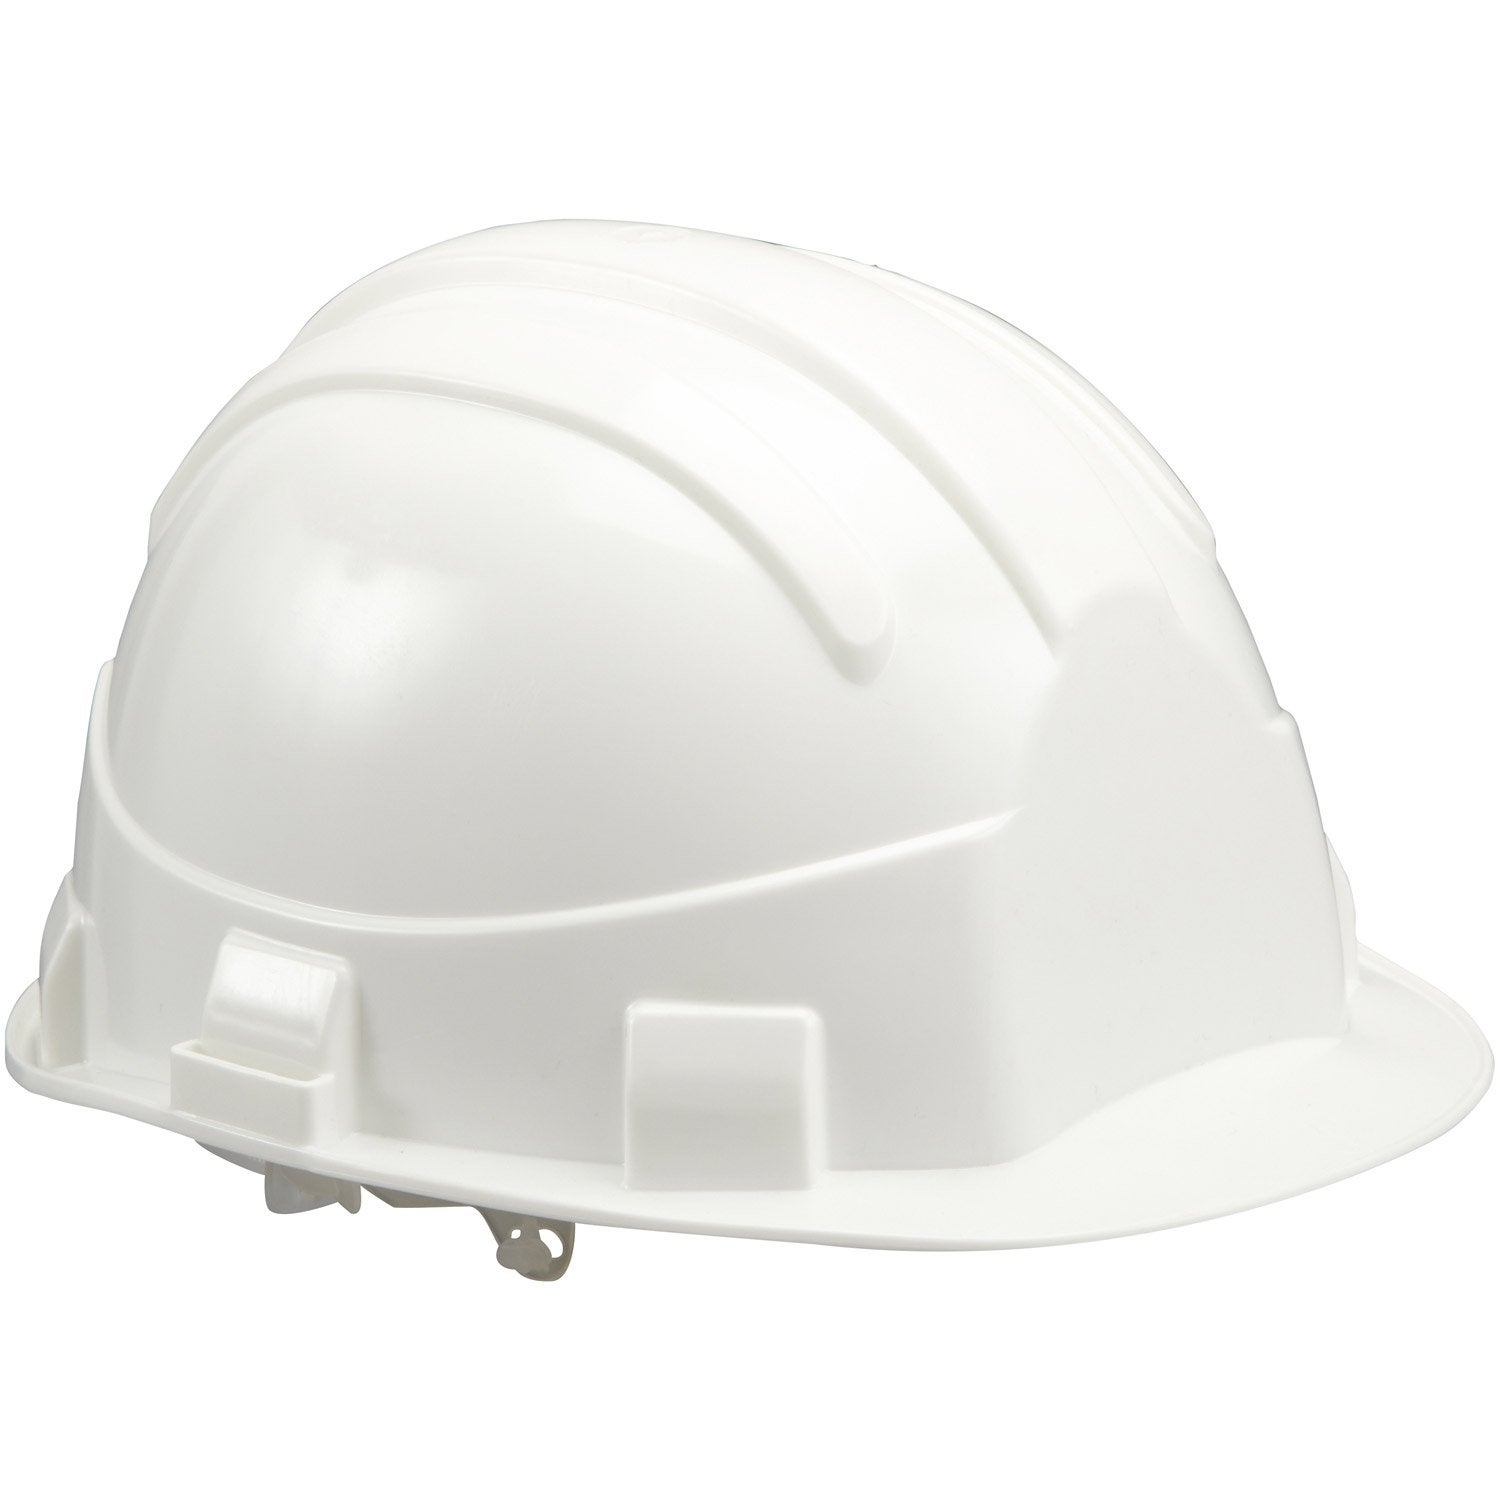 Casque de chantier leroy merlin - Aspirateur chantier leroy merlin ...